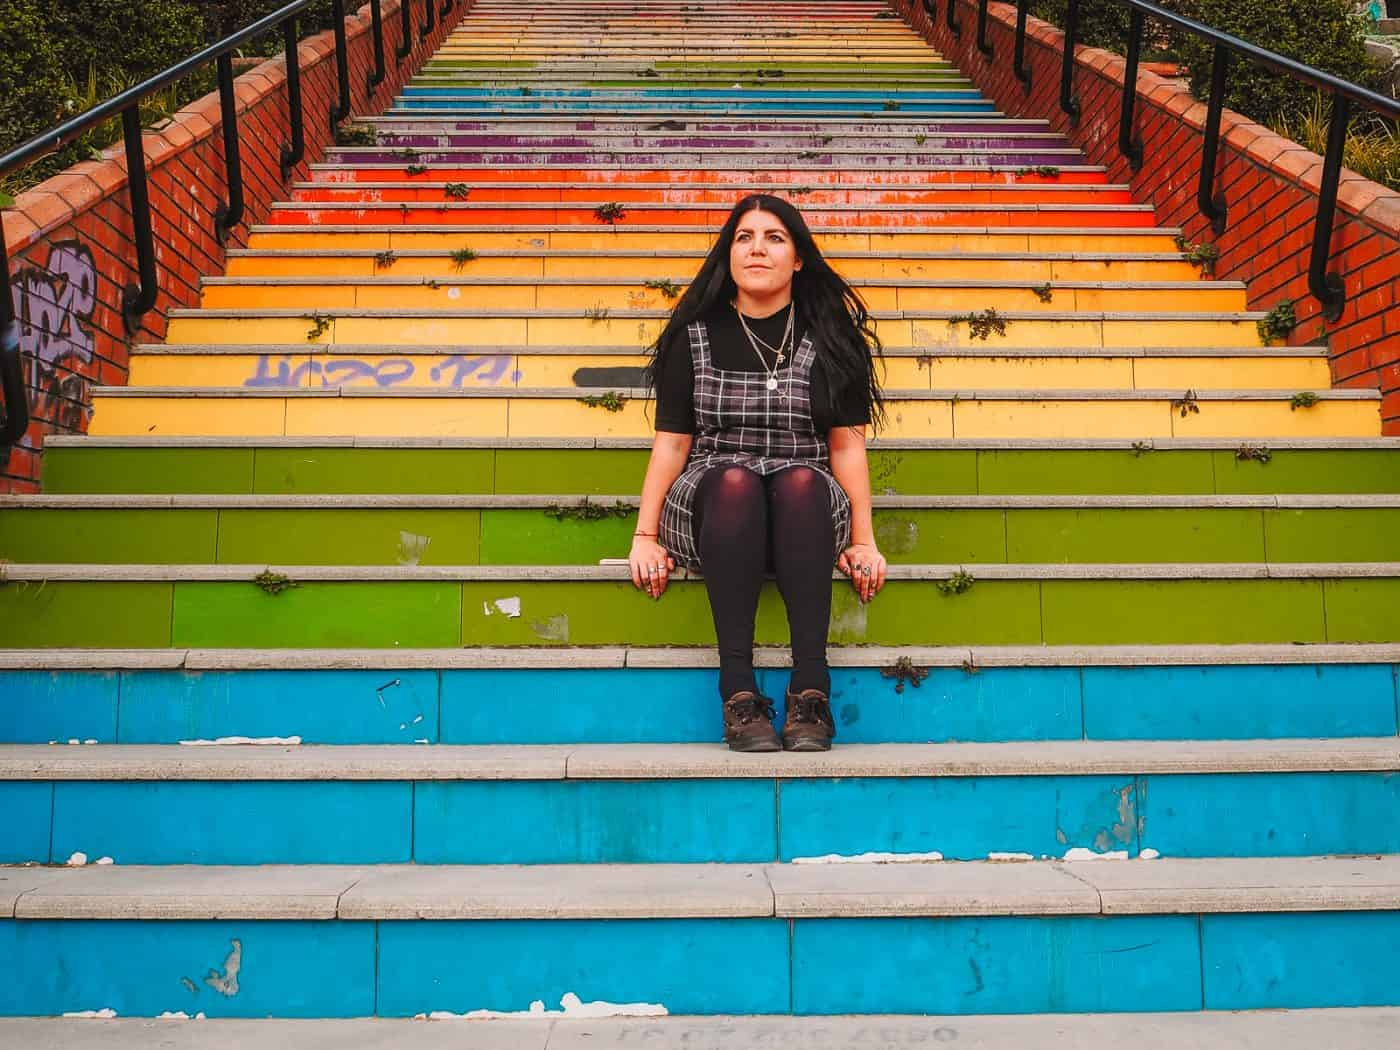 Rainbow stairs in Istanbul